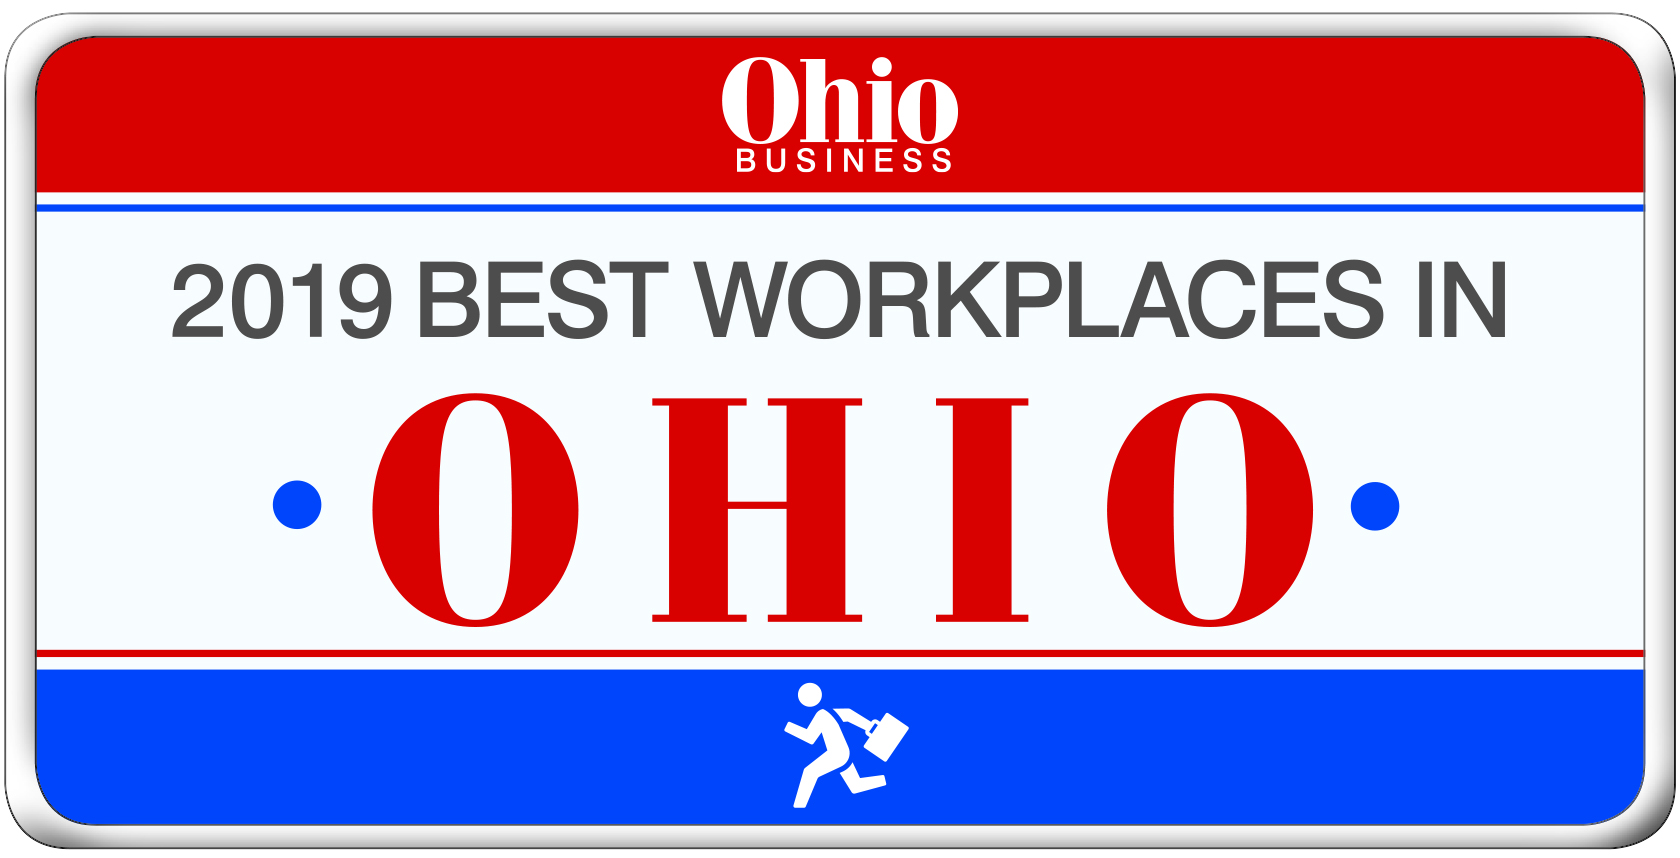 Ohio Best Workplace 2019.jpg